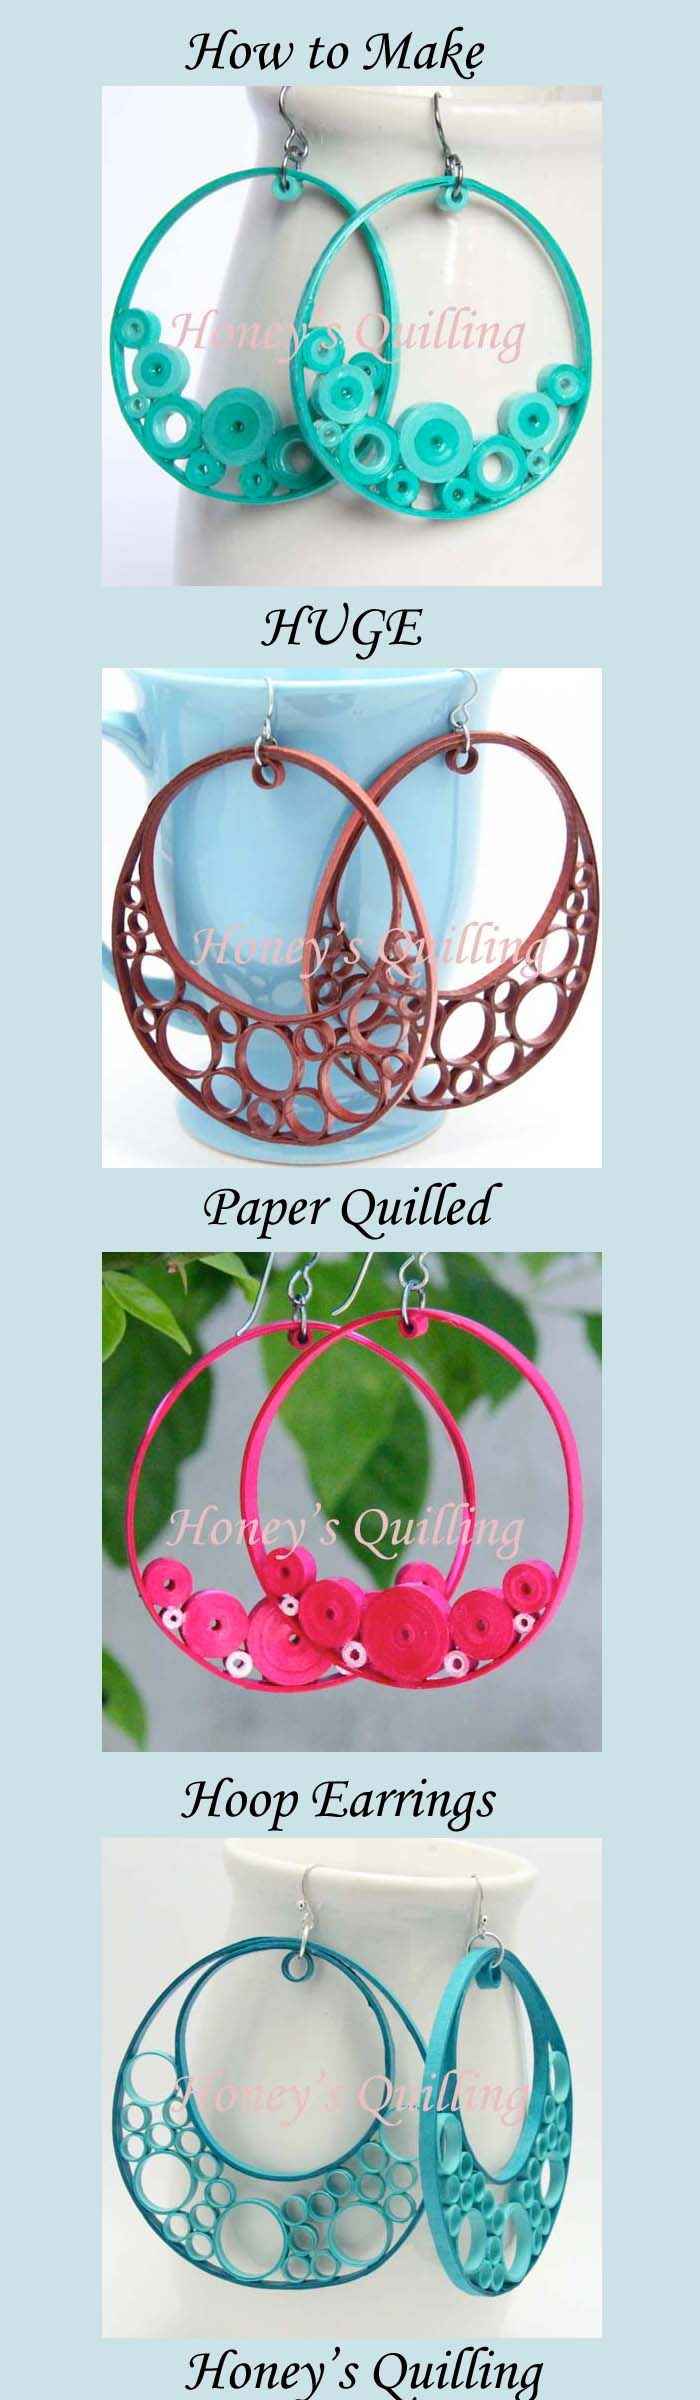 A collection of the huge hoop paper quilled earrings I have made along with instructions for how to make your own! -Honey's Quilling